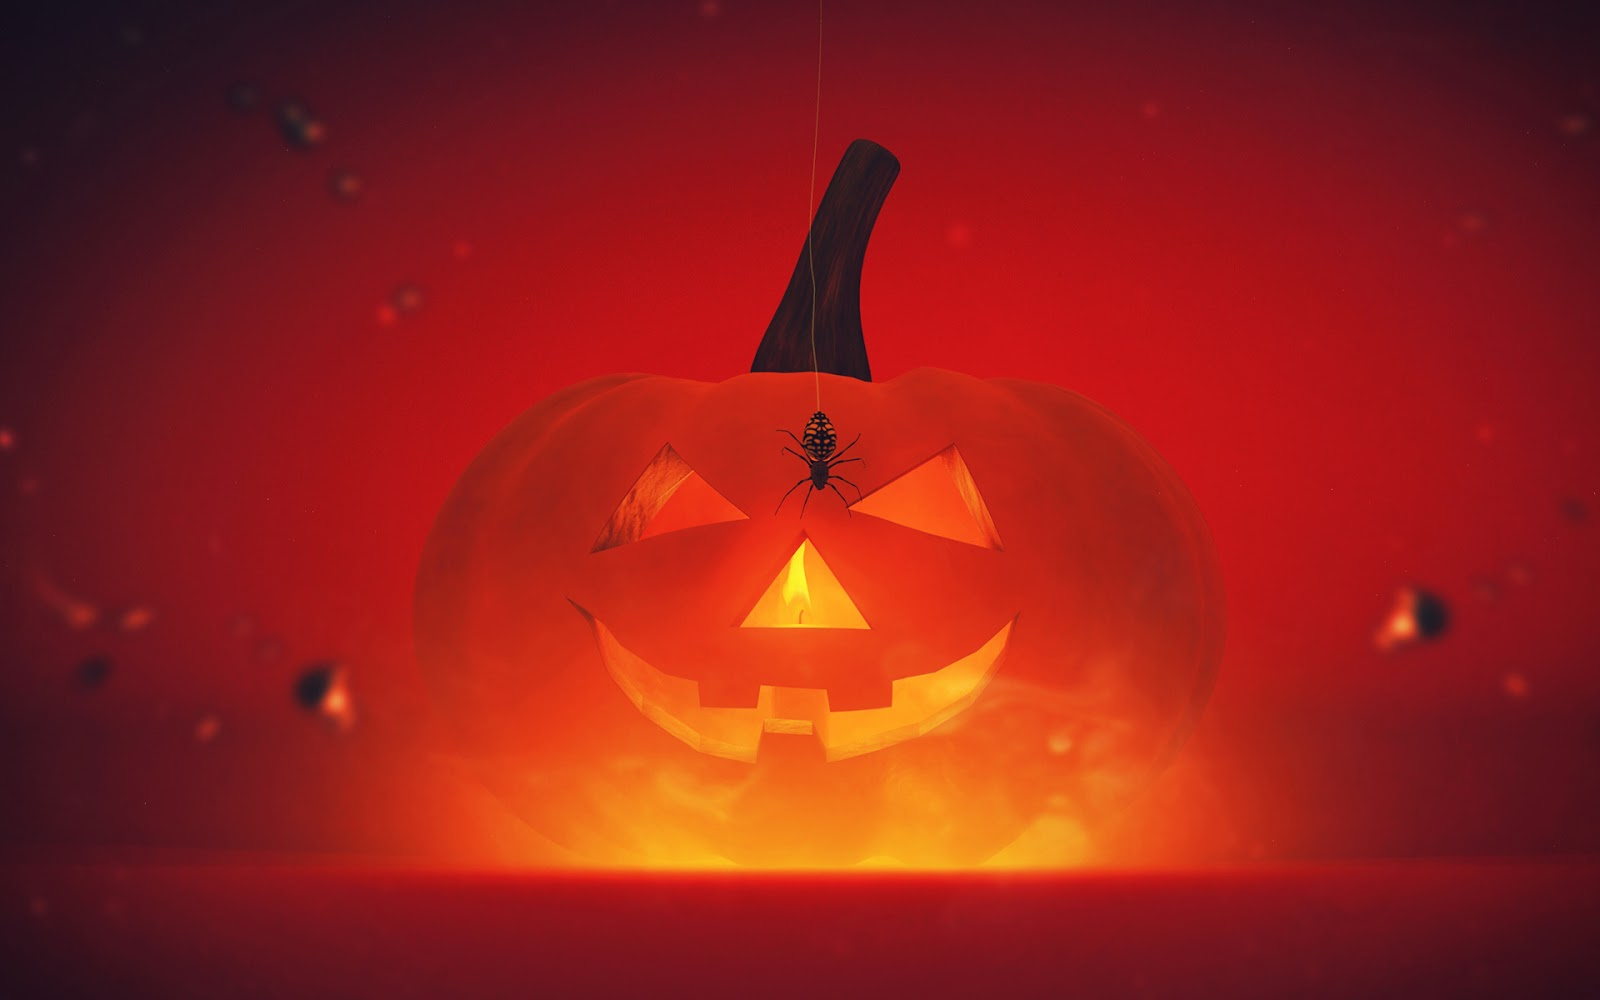 happy halloween wallpapers - photo #22